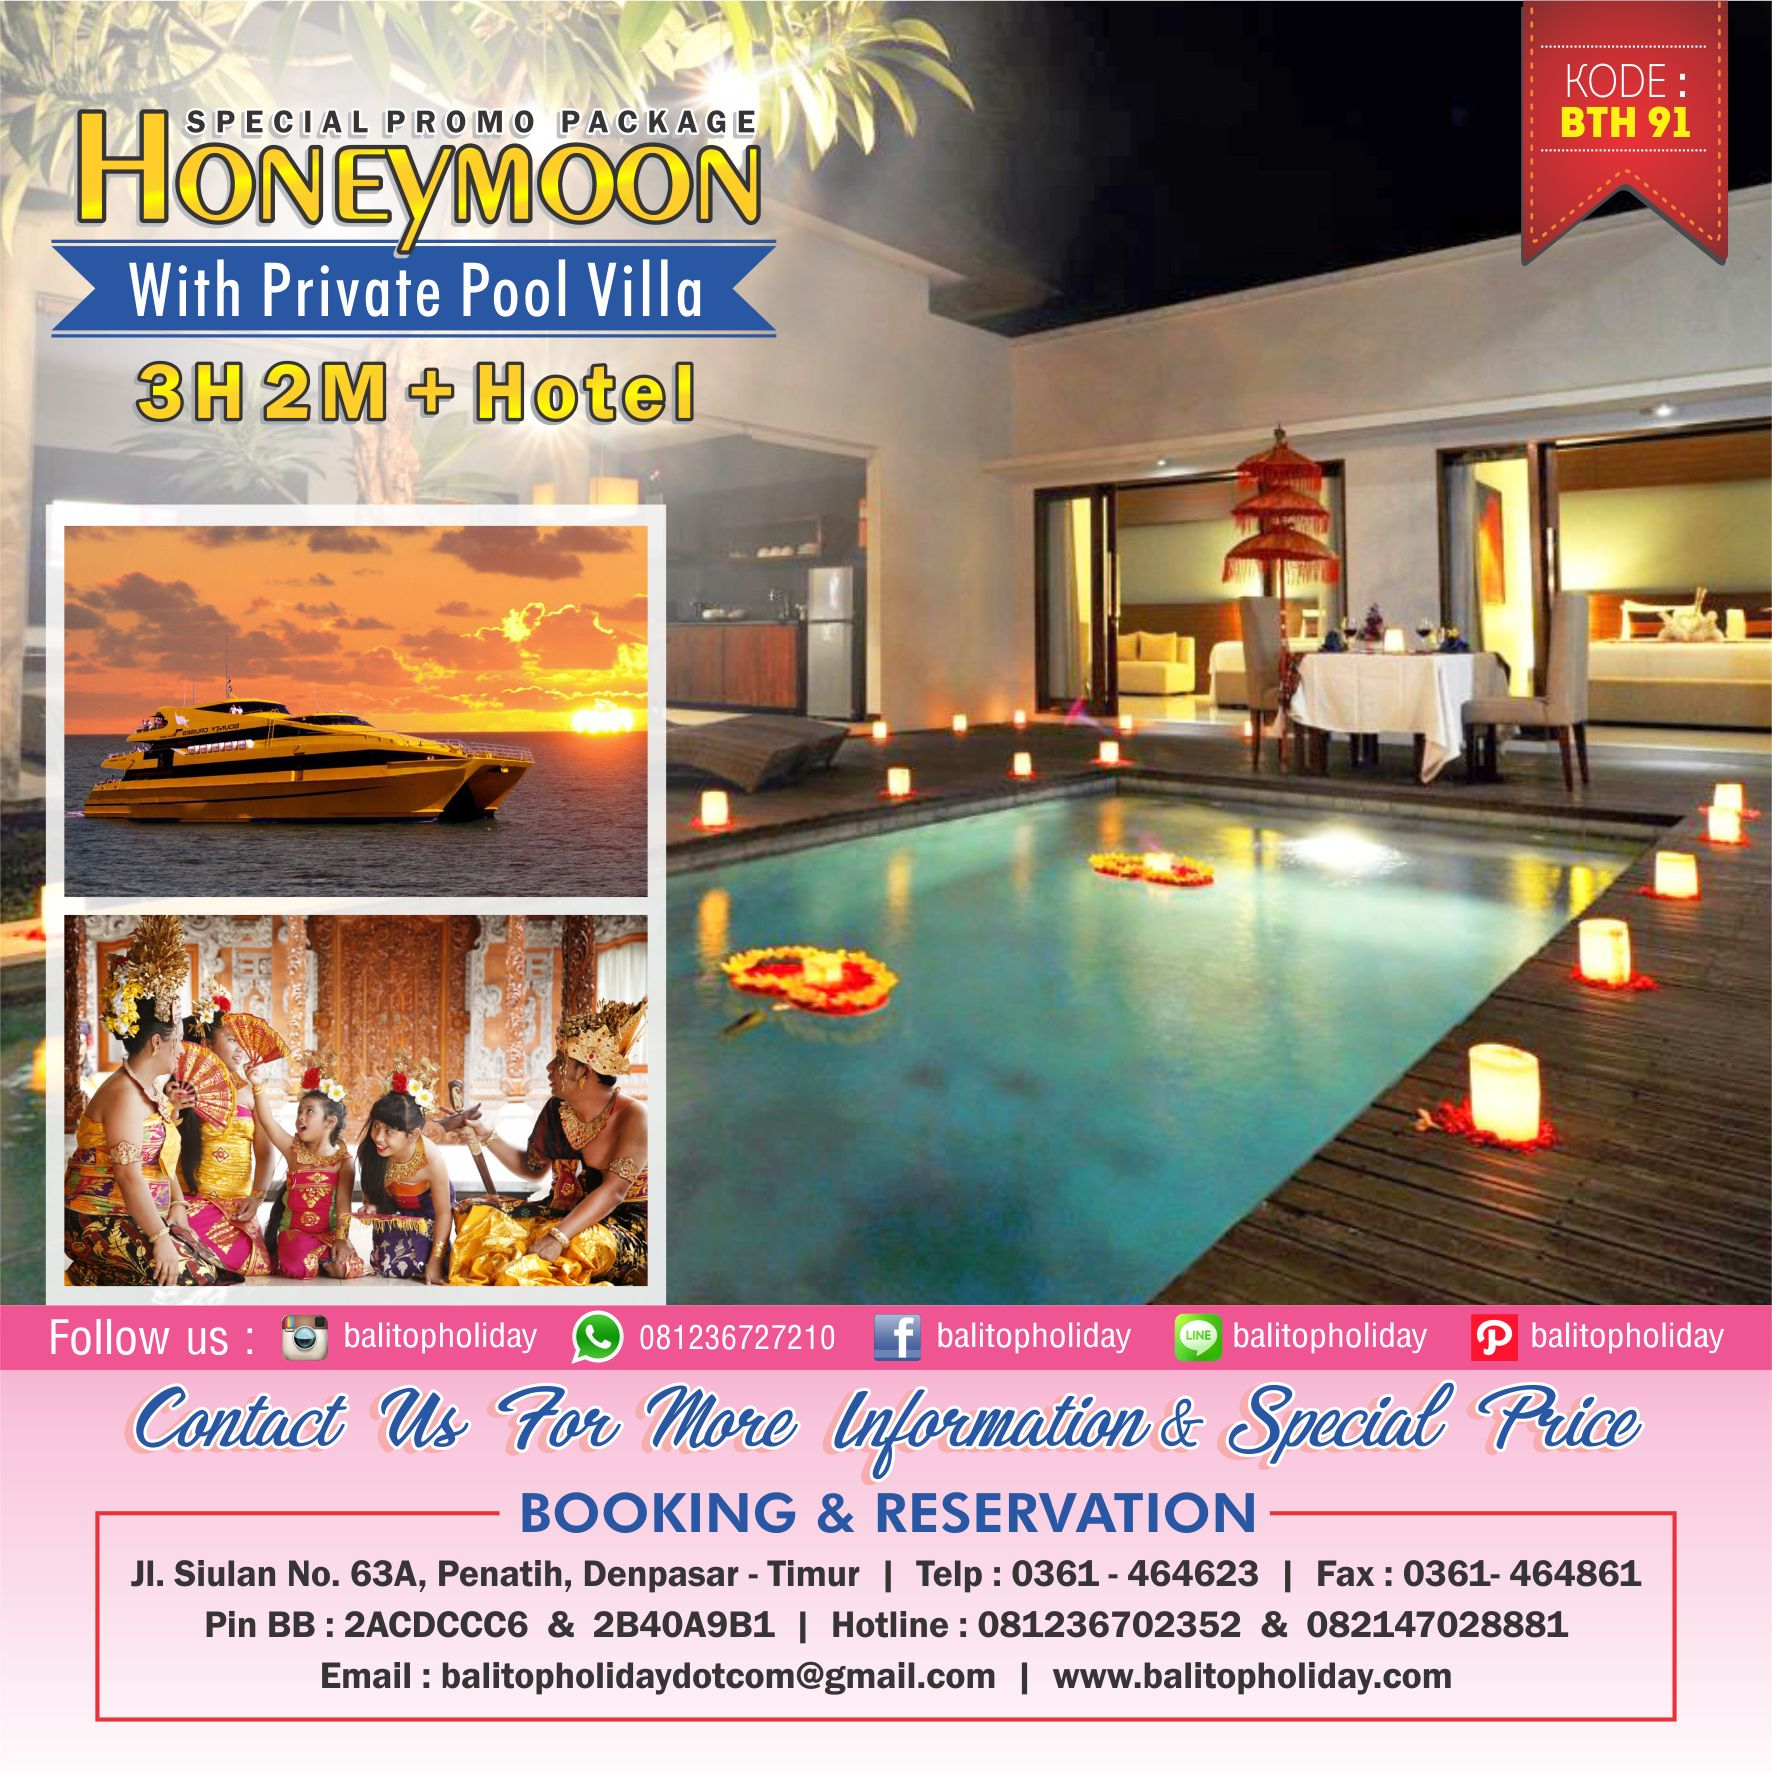 Honeymoon With Private Pool Villa BTH 91